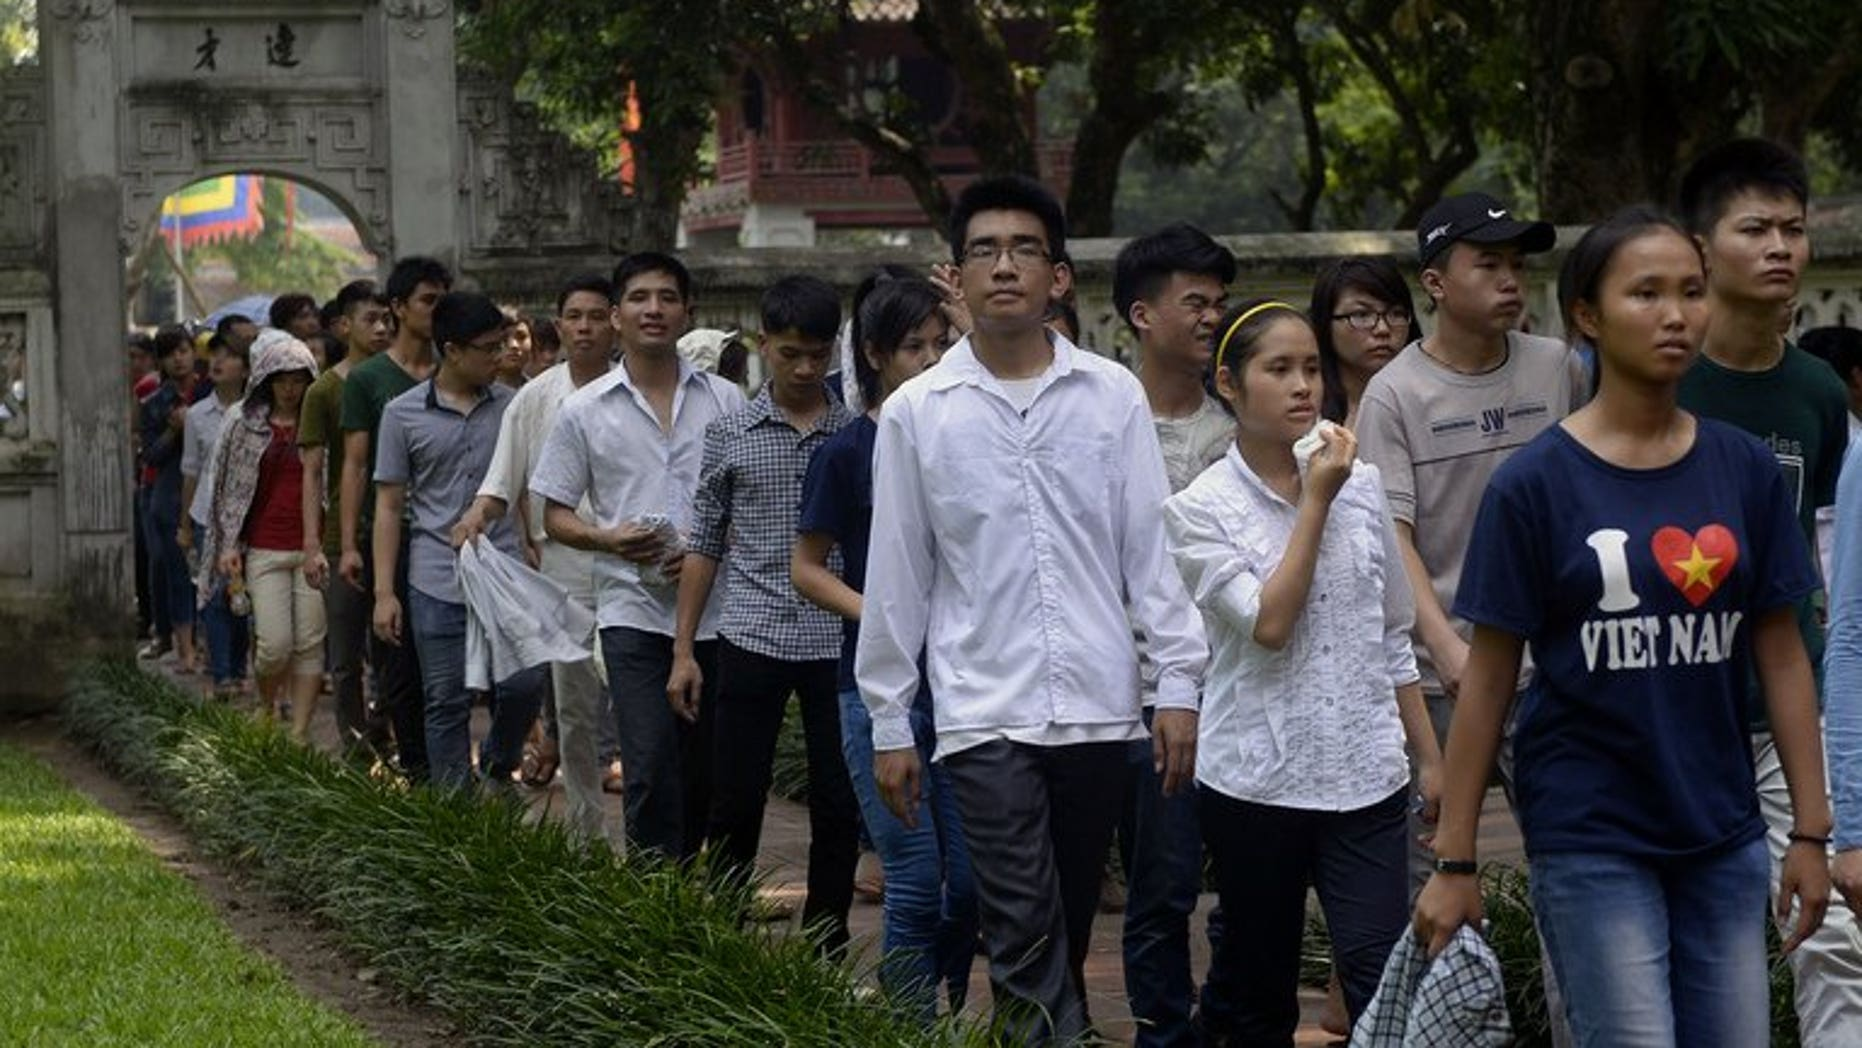 Students walk inside the temple of literature at Vietnam's first national university on July 2, 2013 as they come to pray for luck prior to the admission exams for a college seat. Vietnam is offering free classes in Marxism, Leninism and the teachings of Ho Chi Minh in a bid to revive interest in the ideology behind the country's system of government.